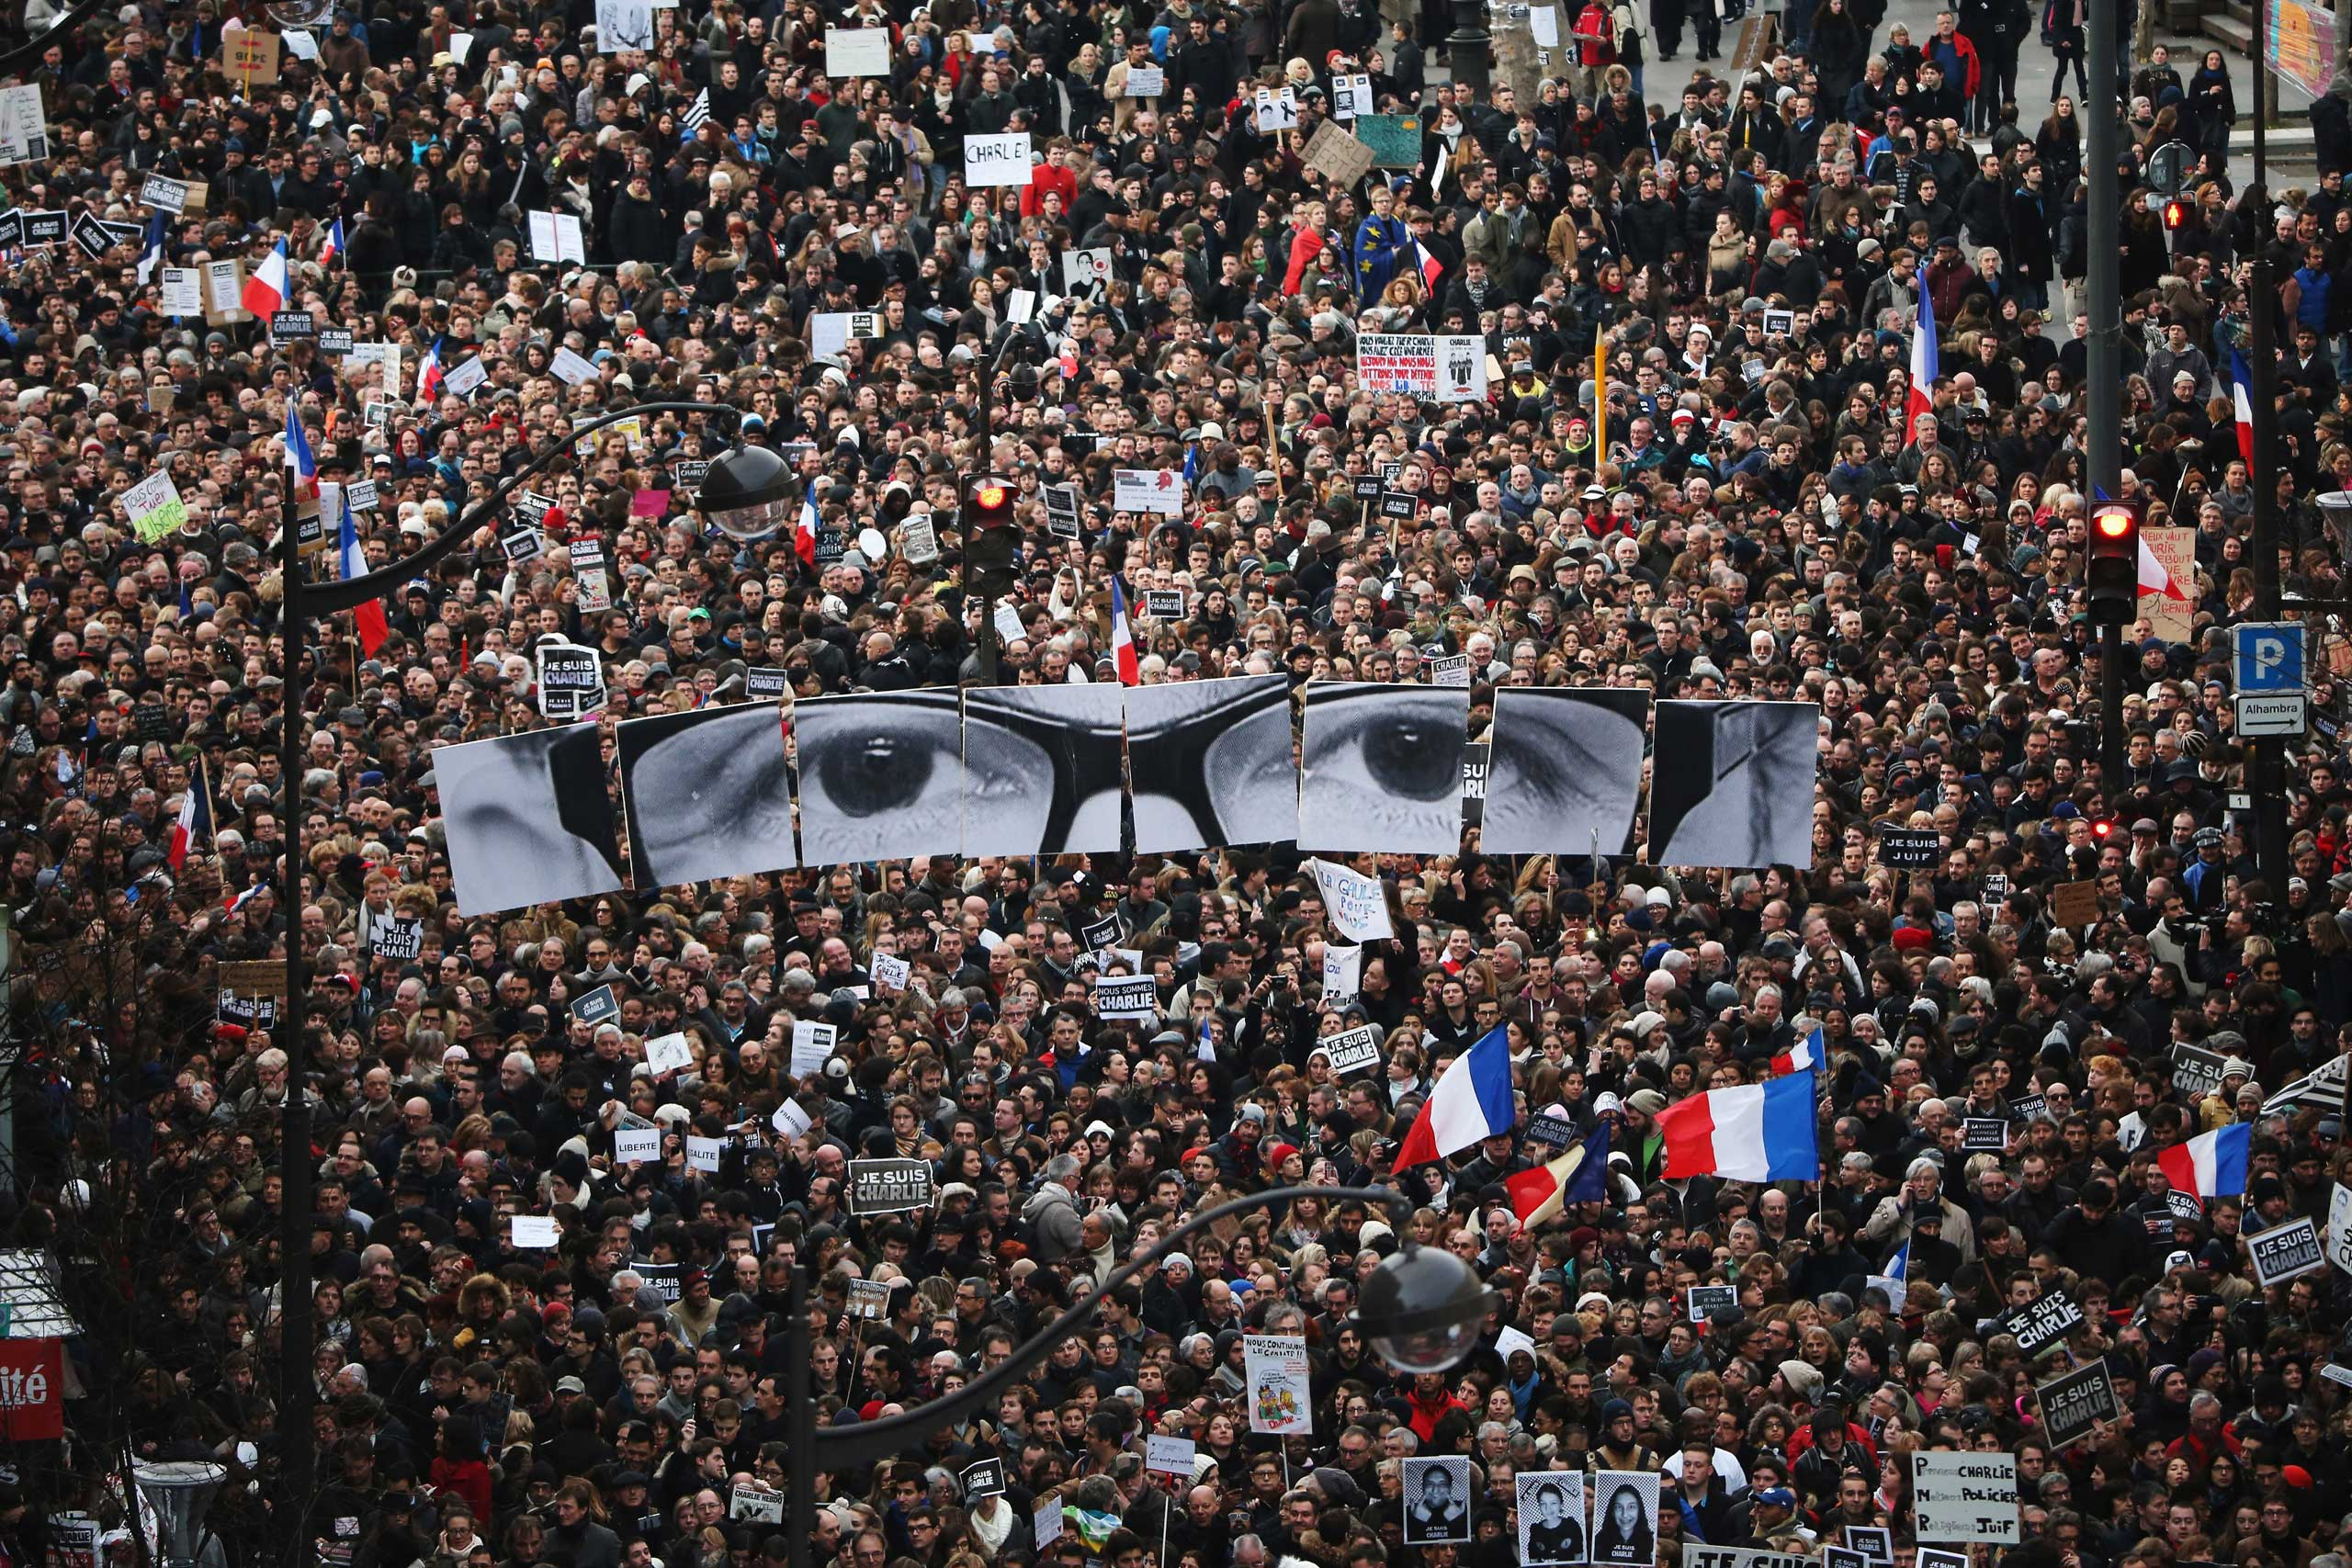 Demonstrators make their way along Boulevrd Voltaire in a unity rally in Paris following the recent terrorist attacks on Jan. 11, 2015 in Paris.